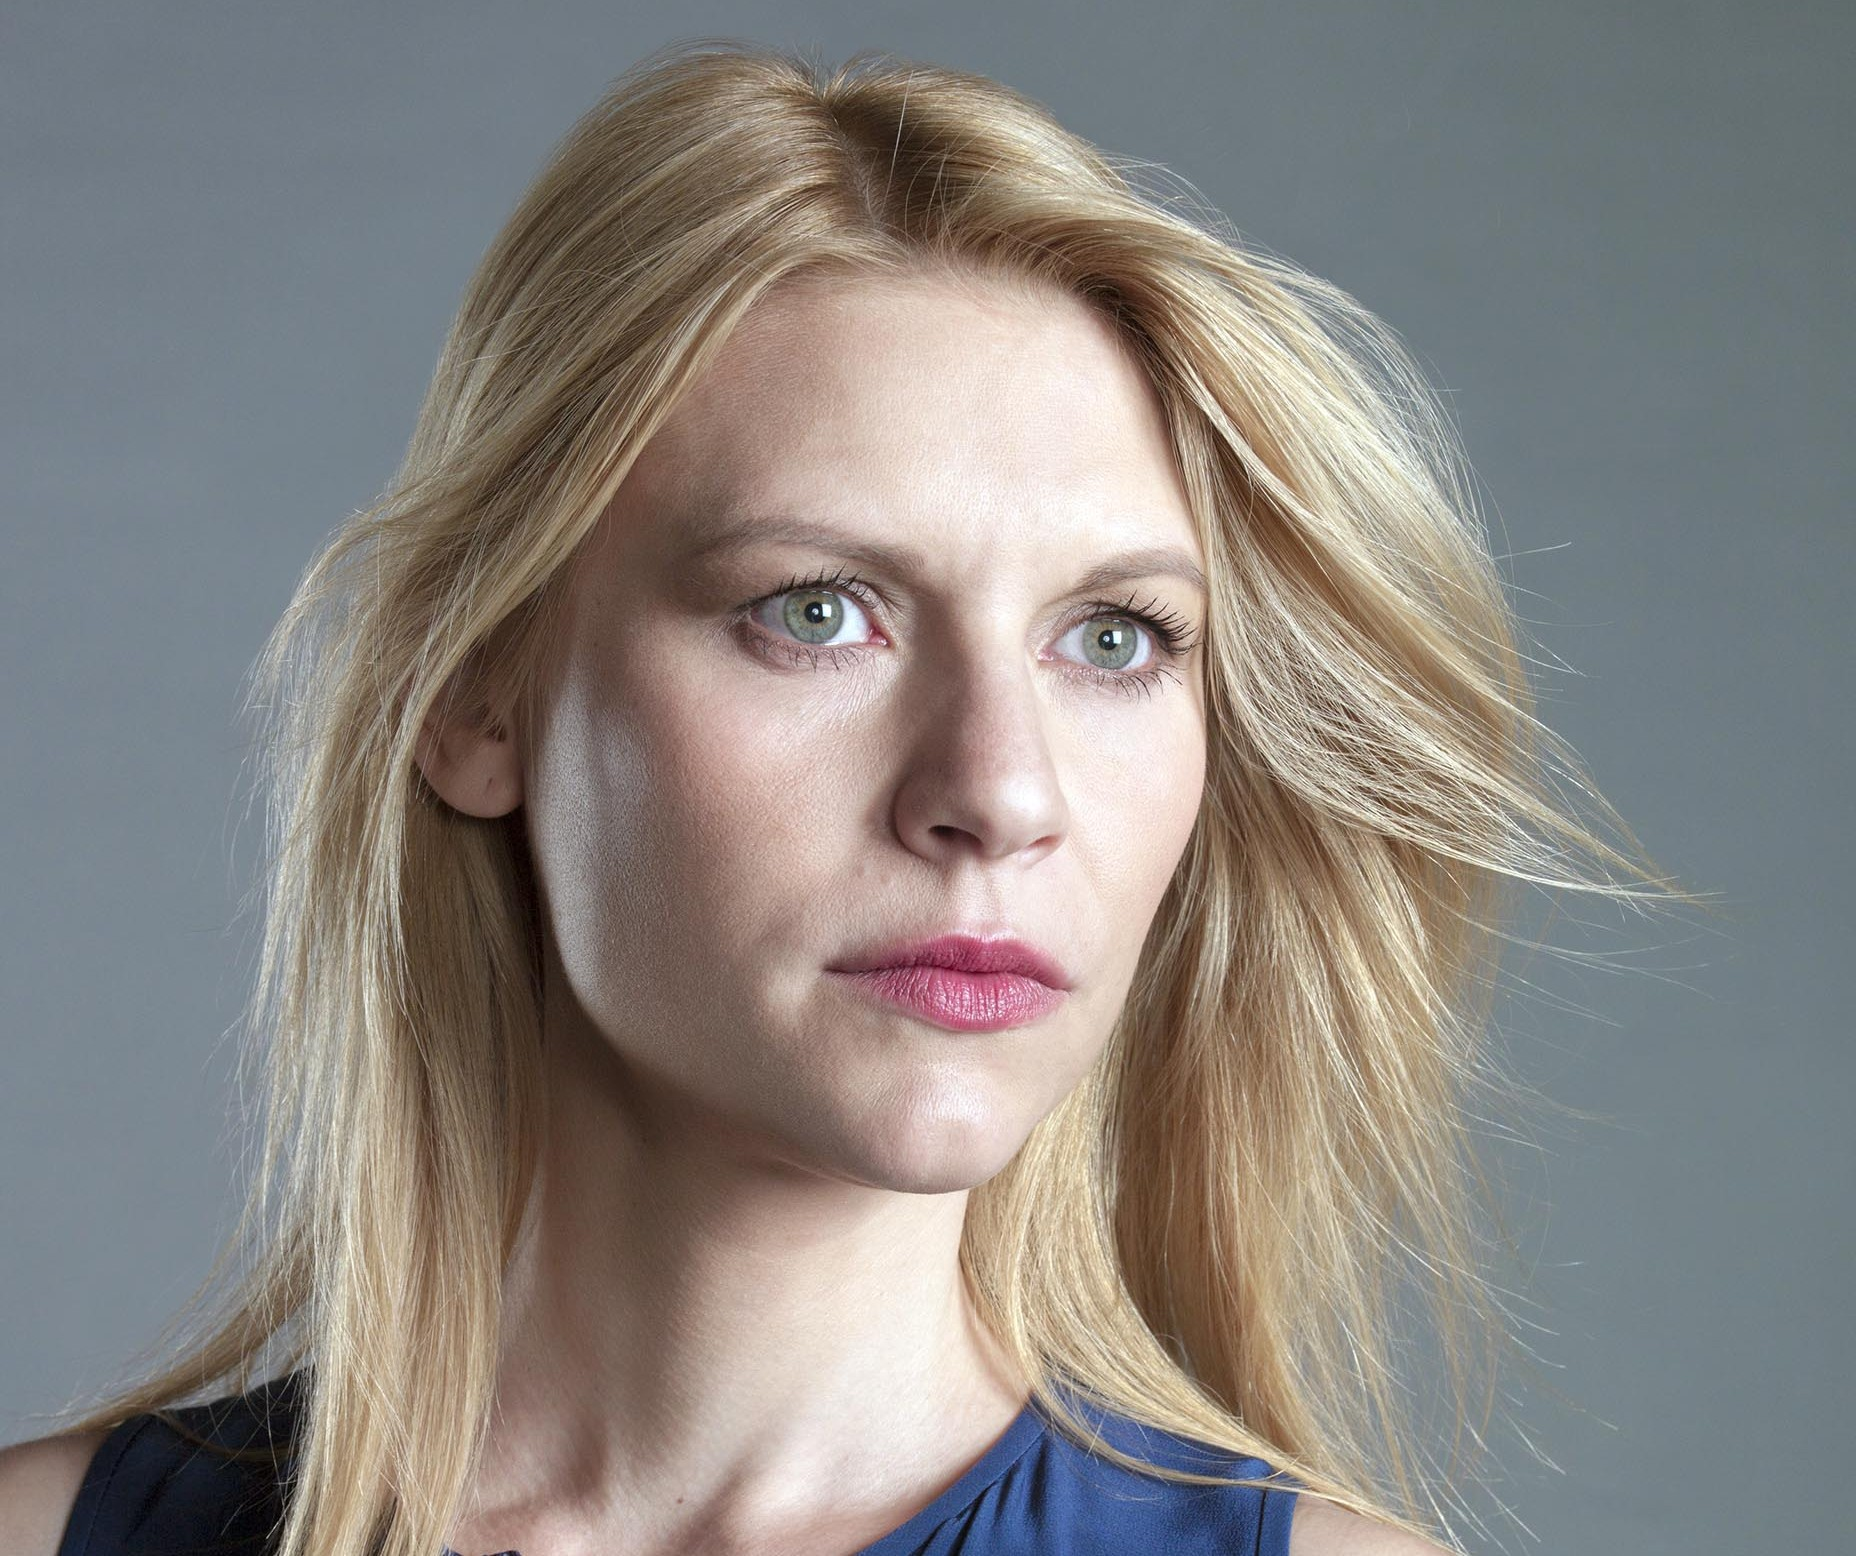 Homeland series 5, episode 3: Carrie revisits the ghosts of her past